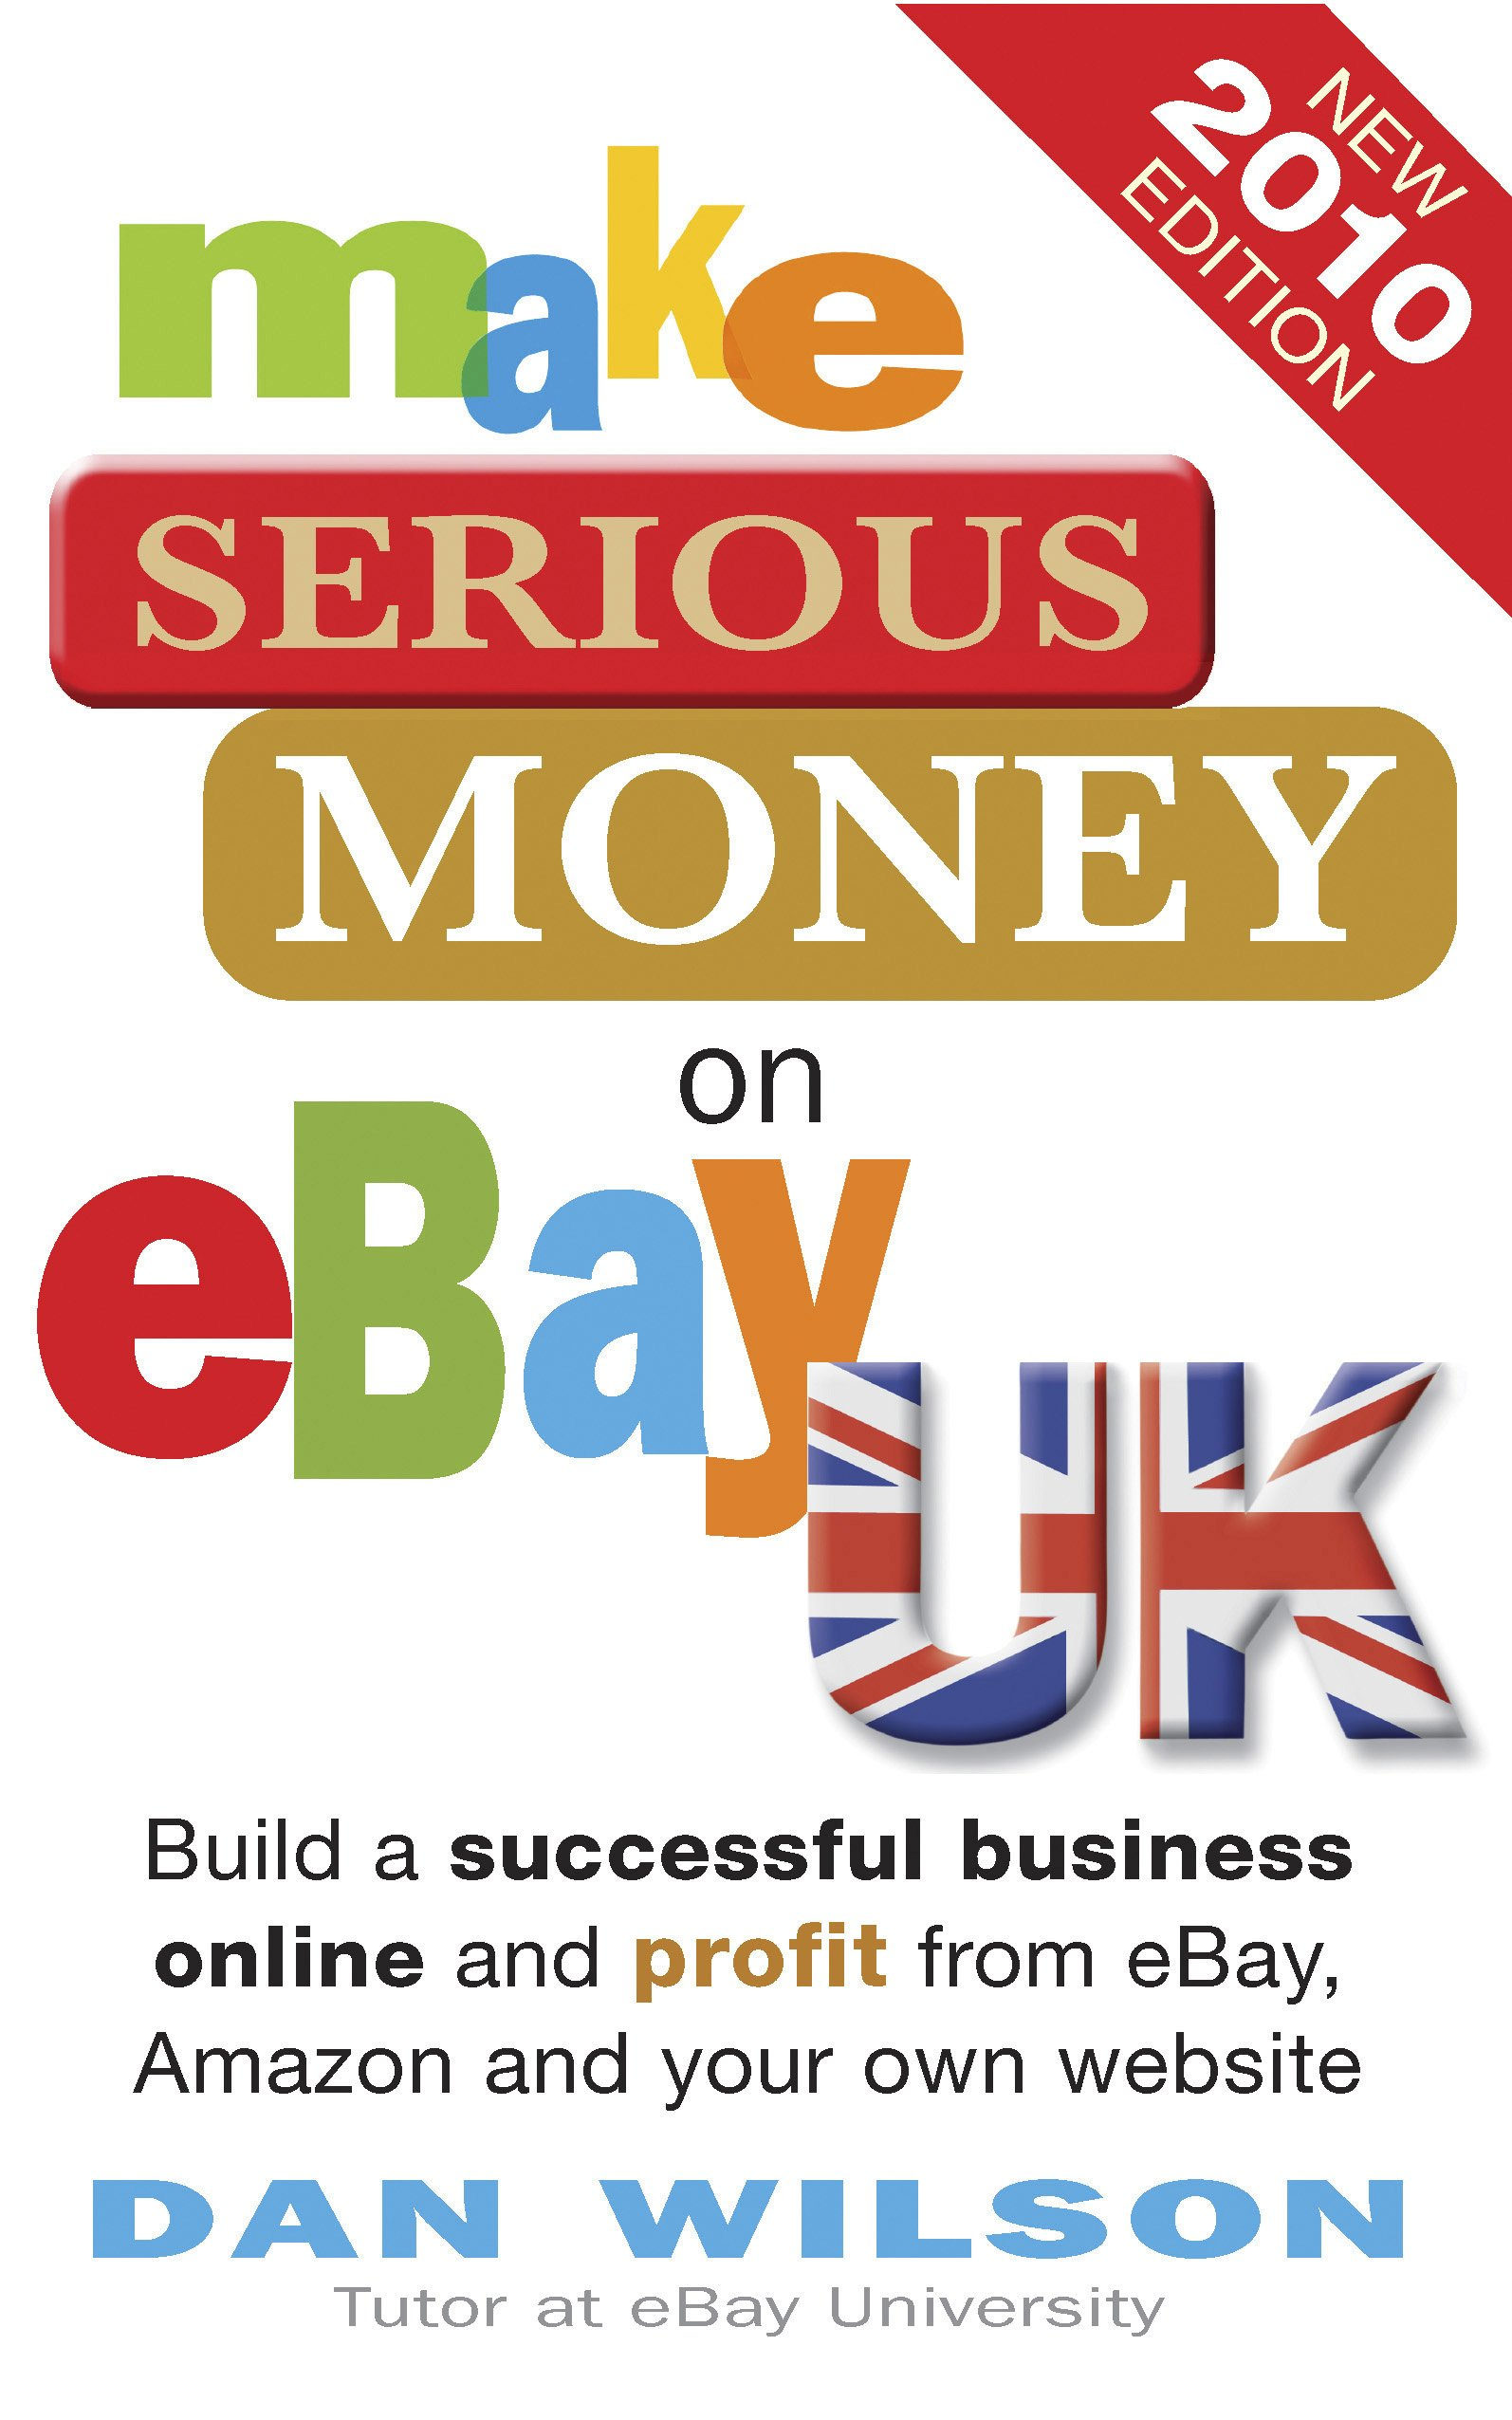 Make Serious Money On Ebay Uk Build A Successful Business Online And Profit From Ebay Amazon And Your Own Website Dan Wilson Wilson Dan 9781857885408 Amazon Com Books